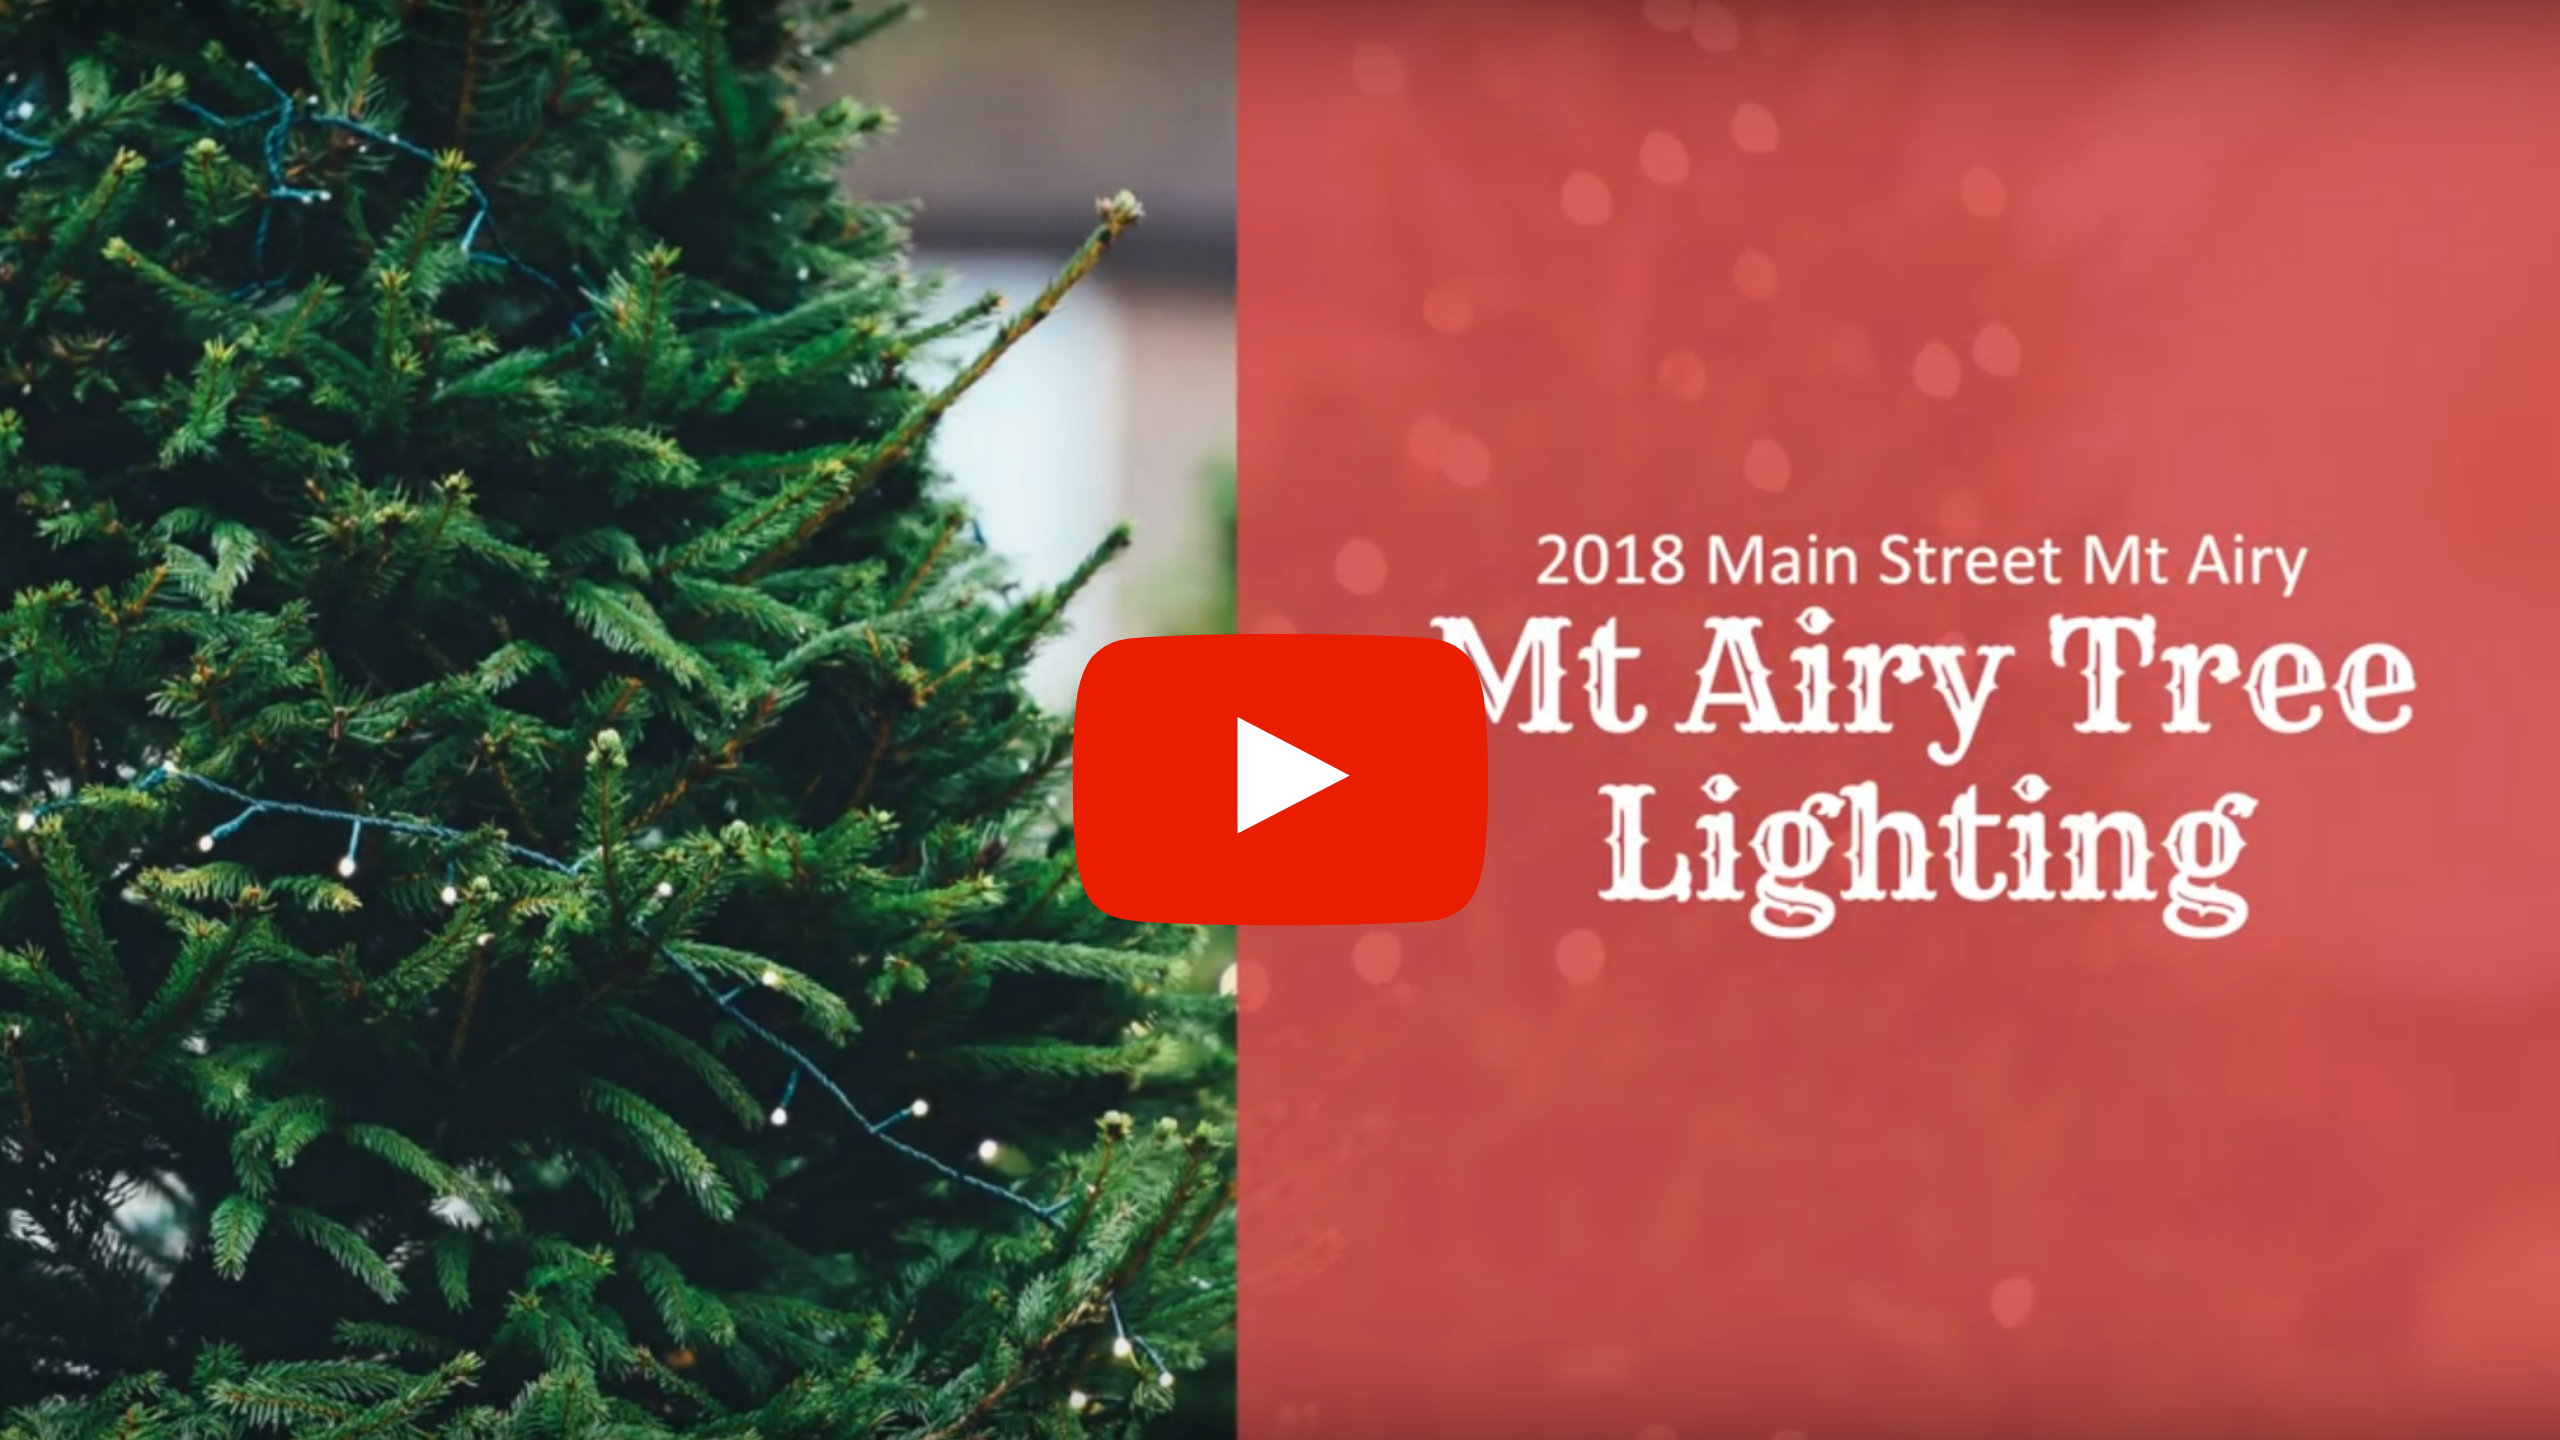 Tree lighting youtube thumbnails 2018